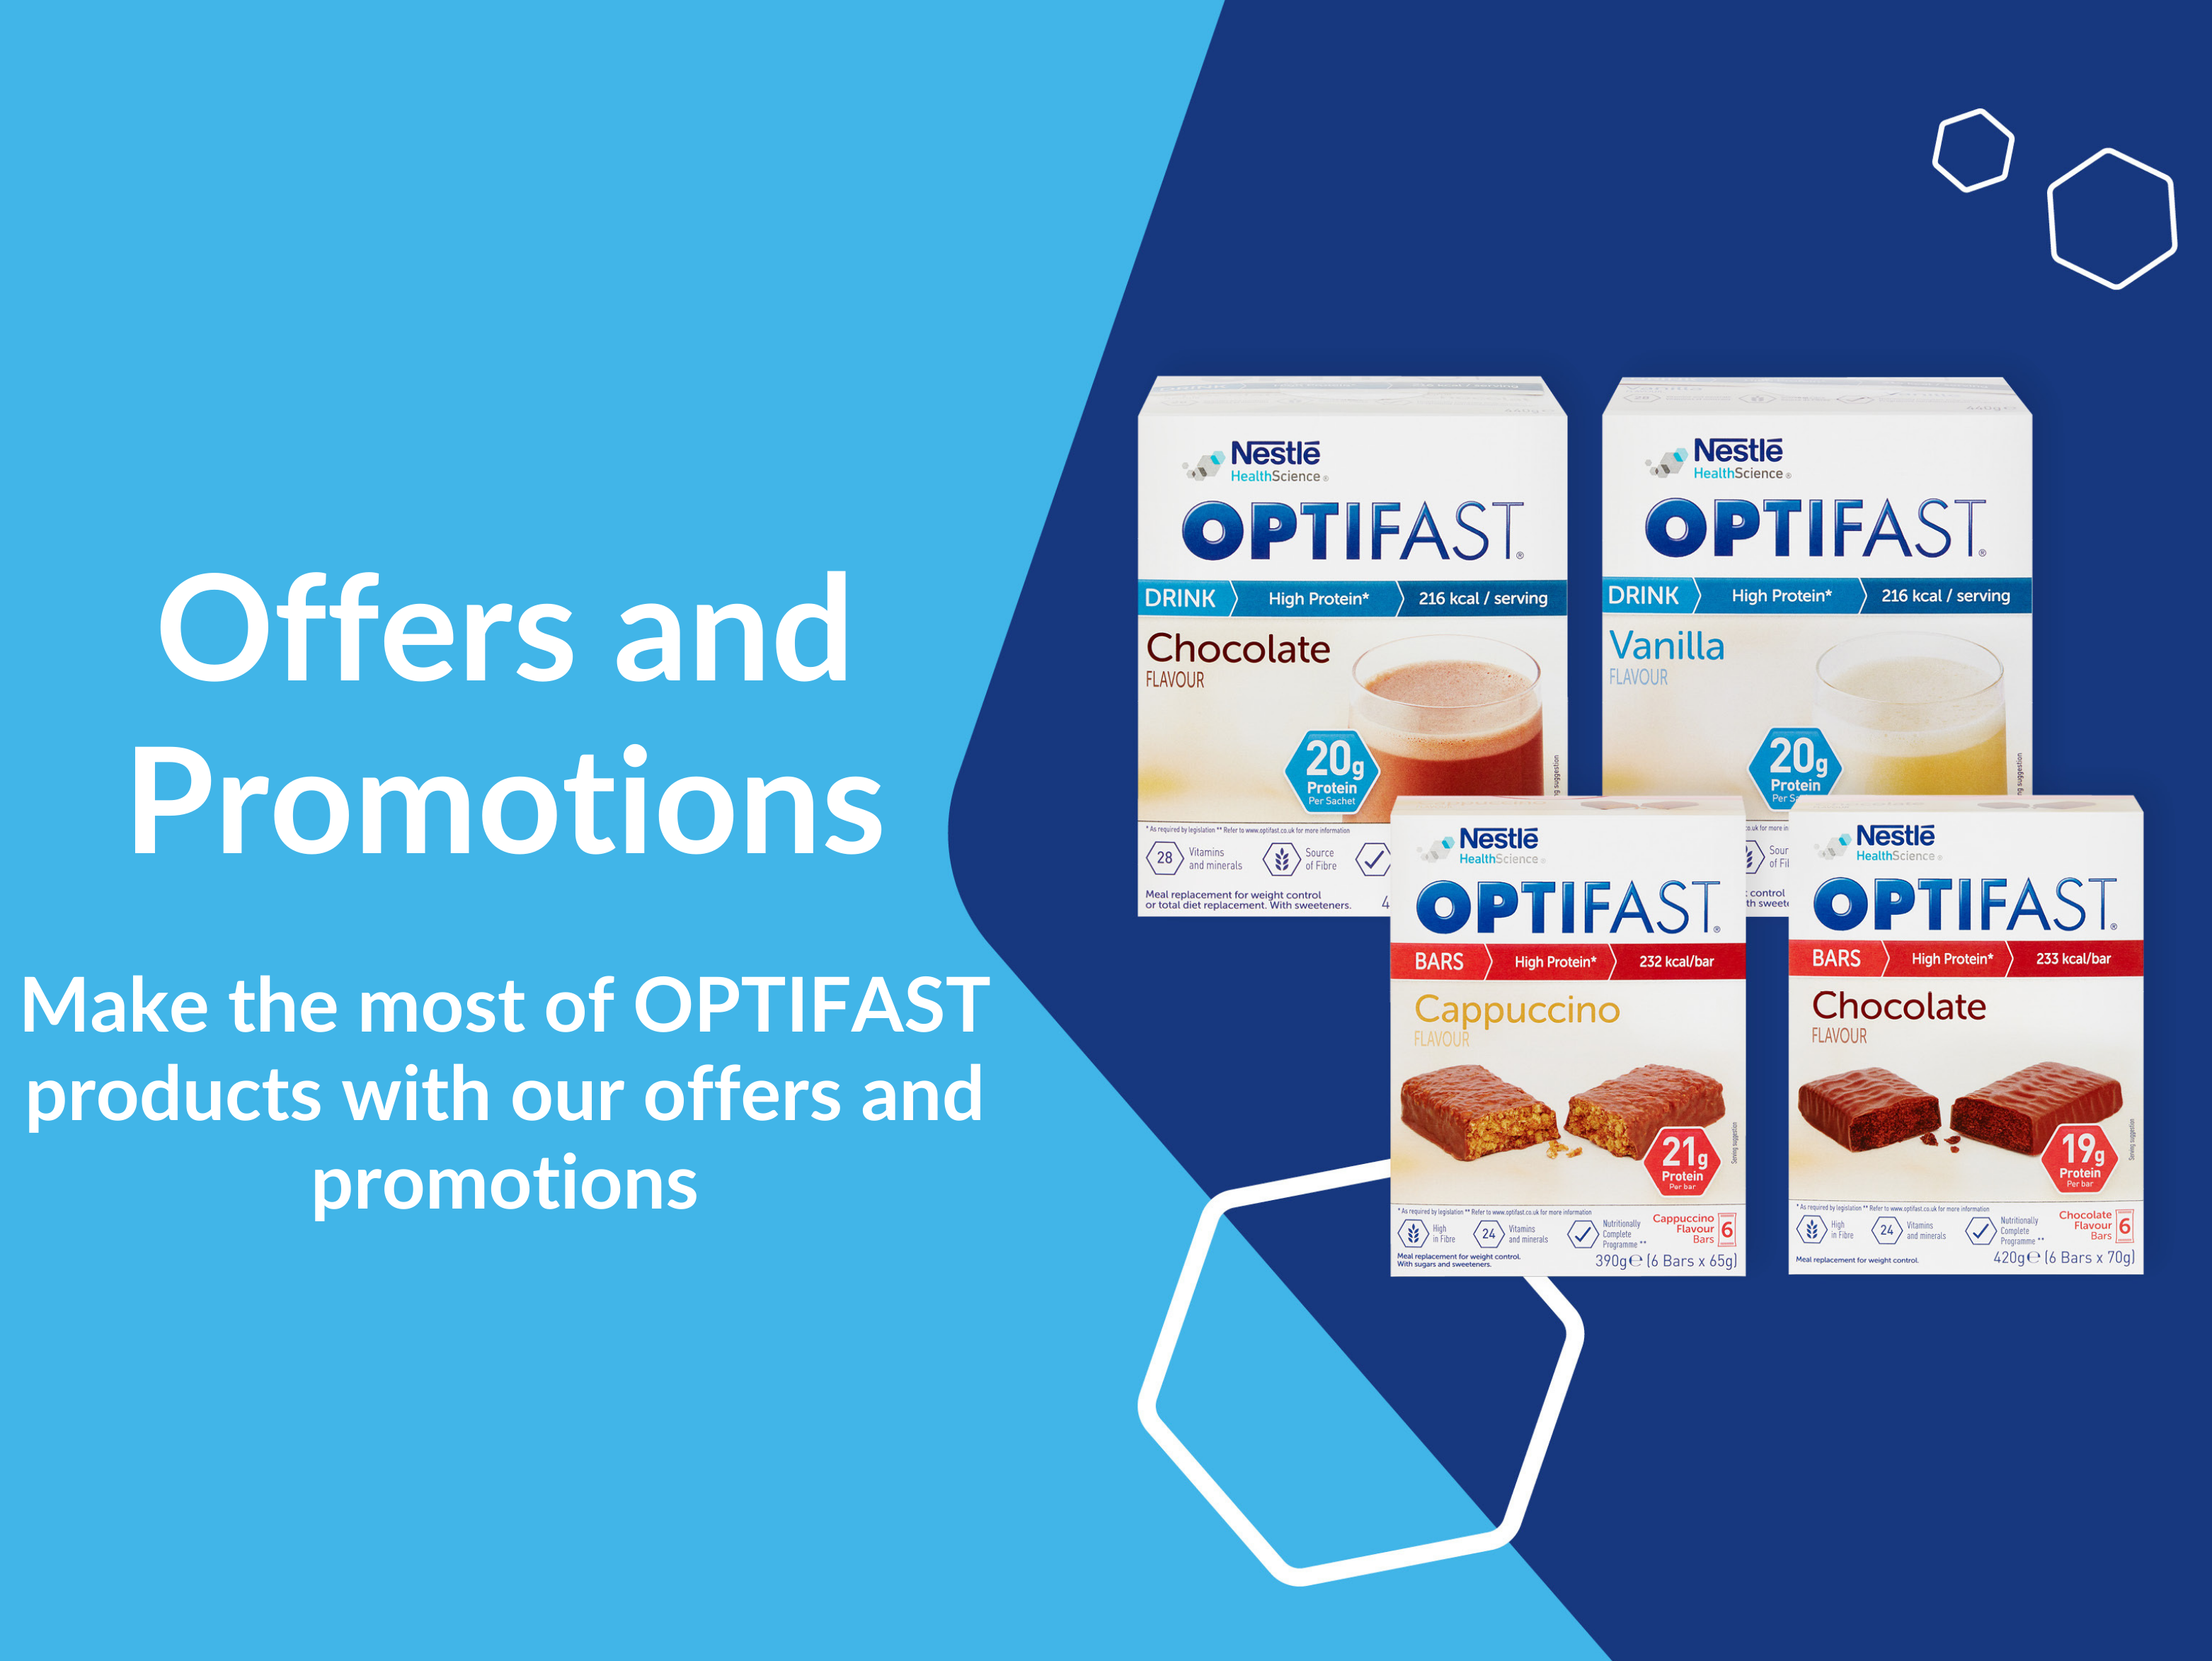 Offers and Promotions Banner, Image with Cereal Bars, Tomato Soup and Chocolate Shake